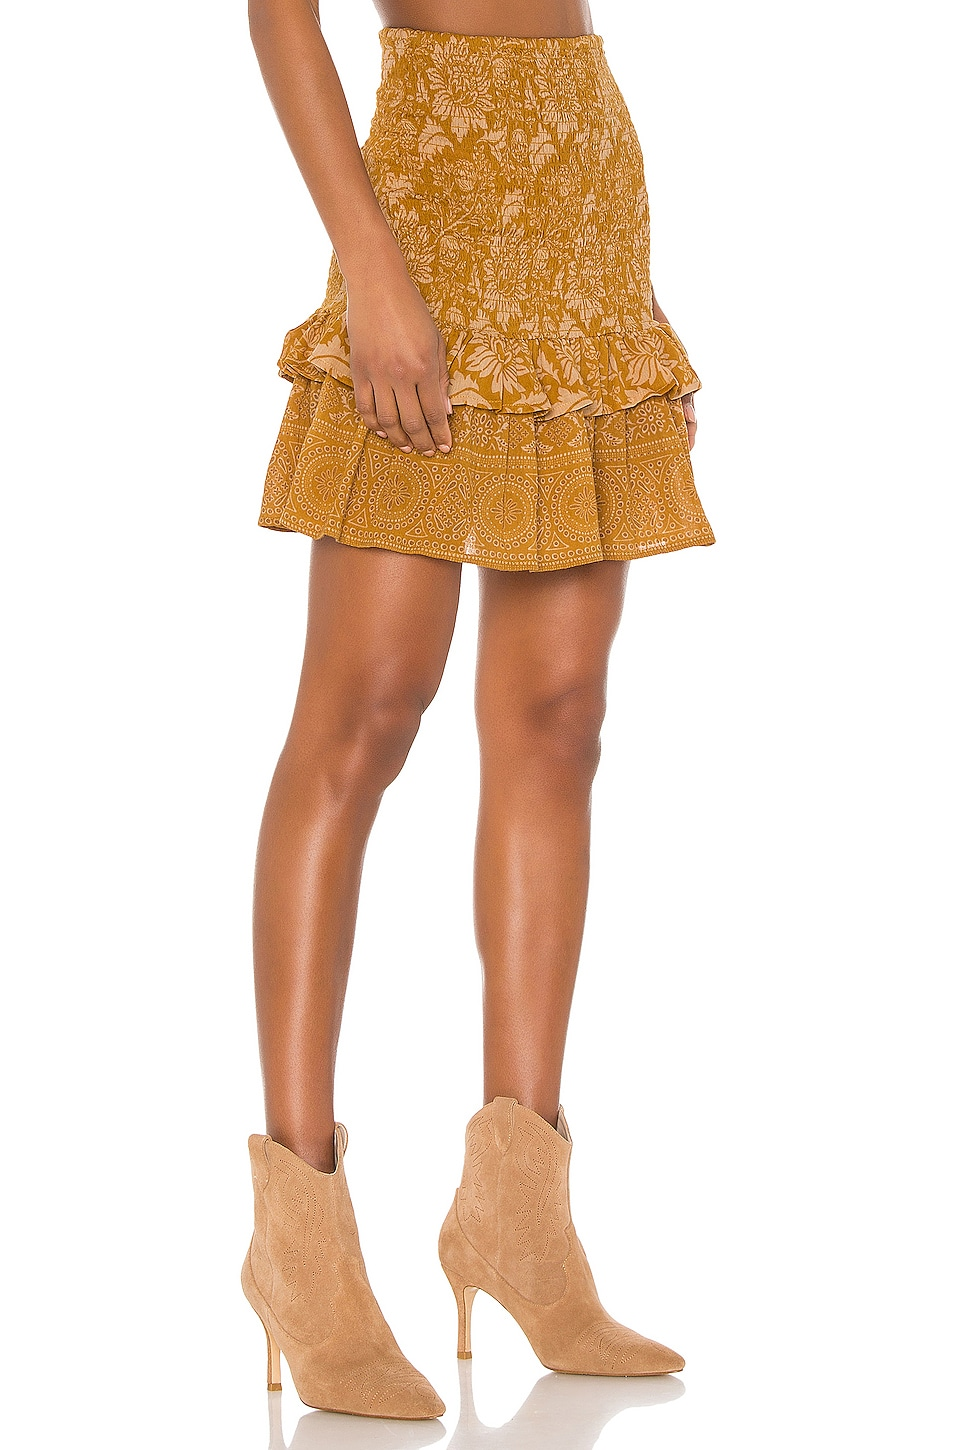 Spell & The Gypsy Collective Lioness Ruched Mini Skirt in Caramel